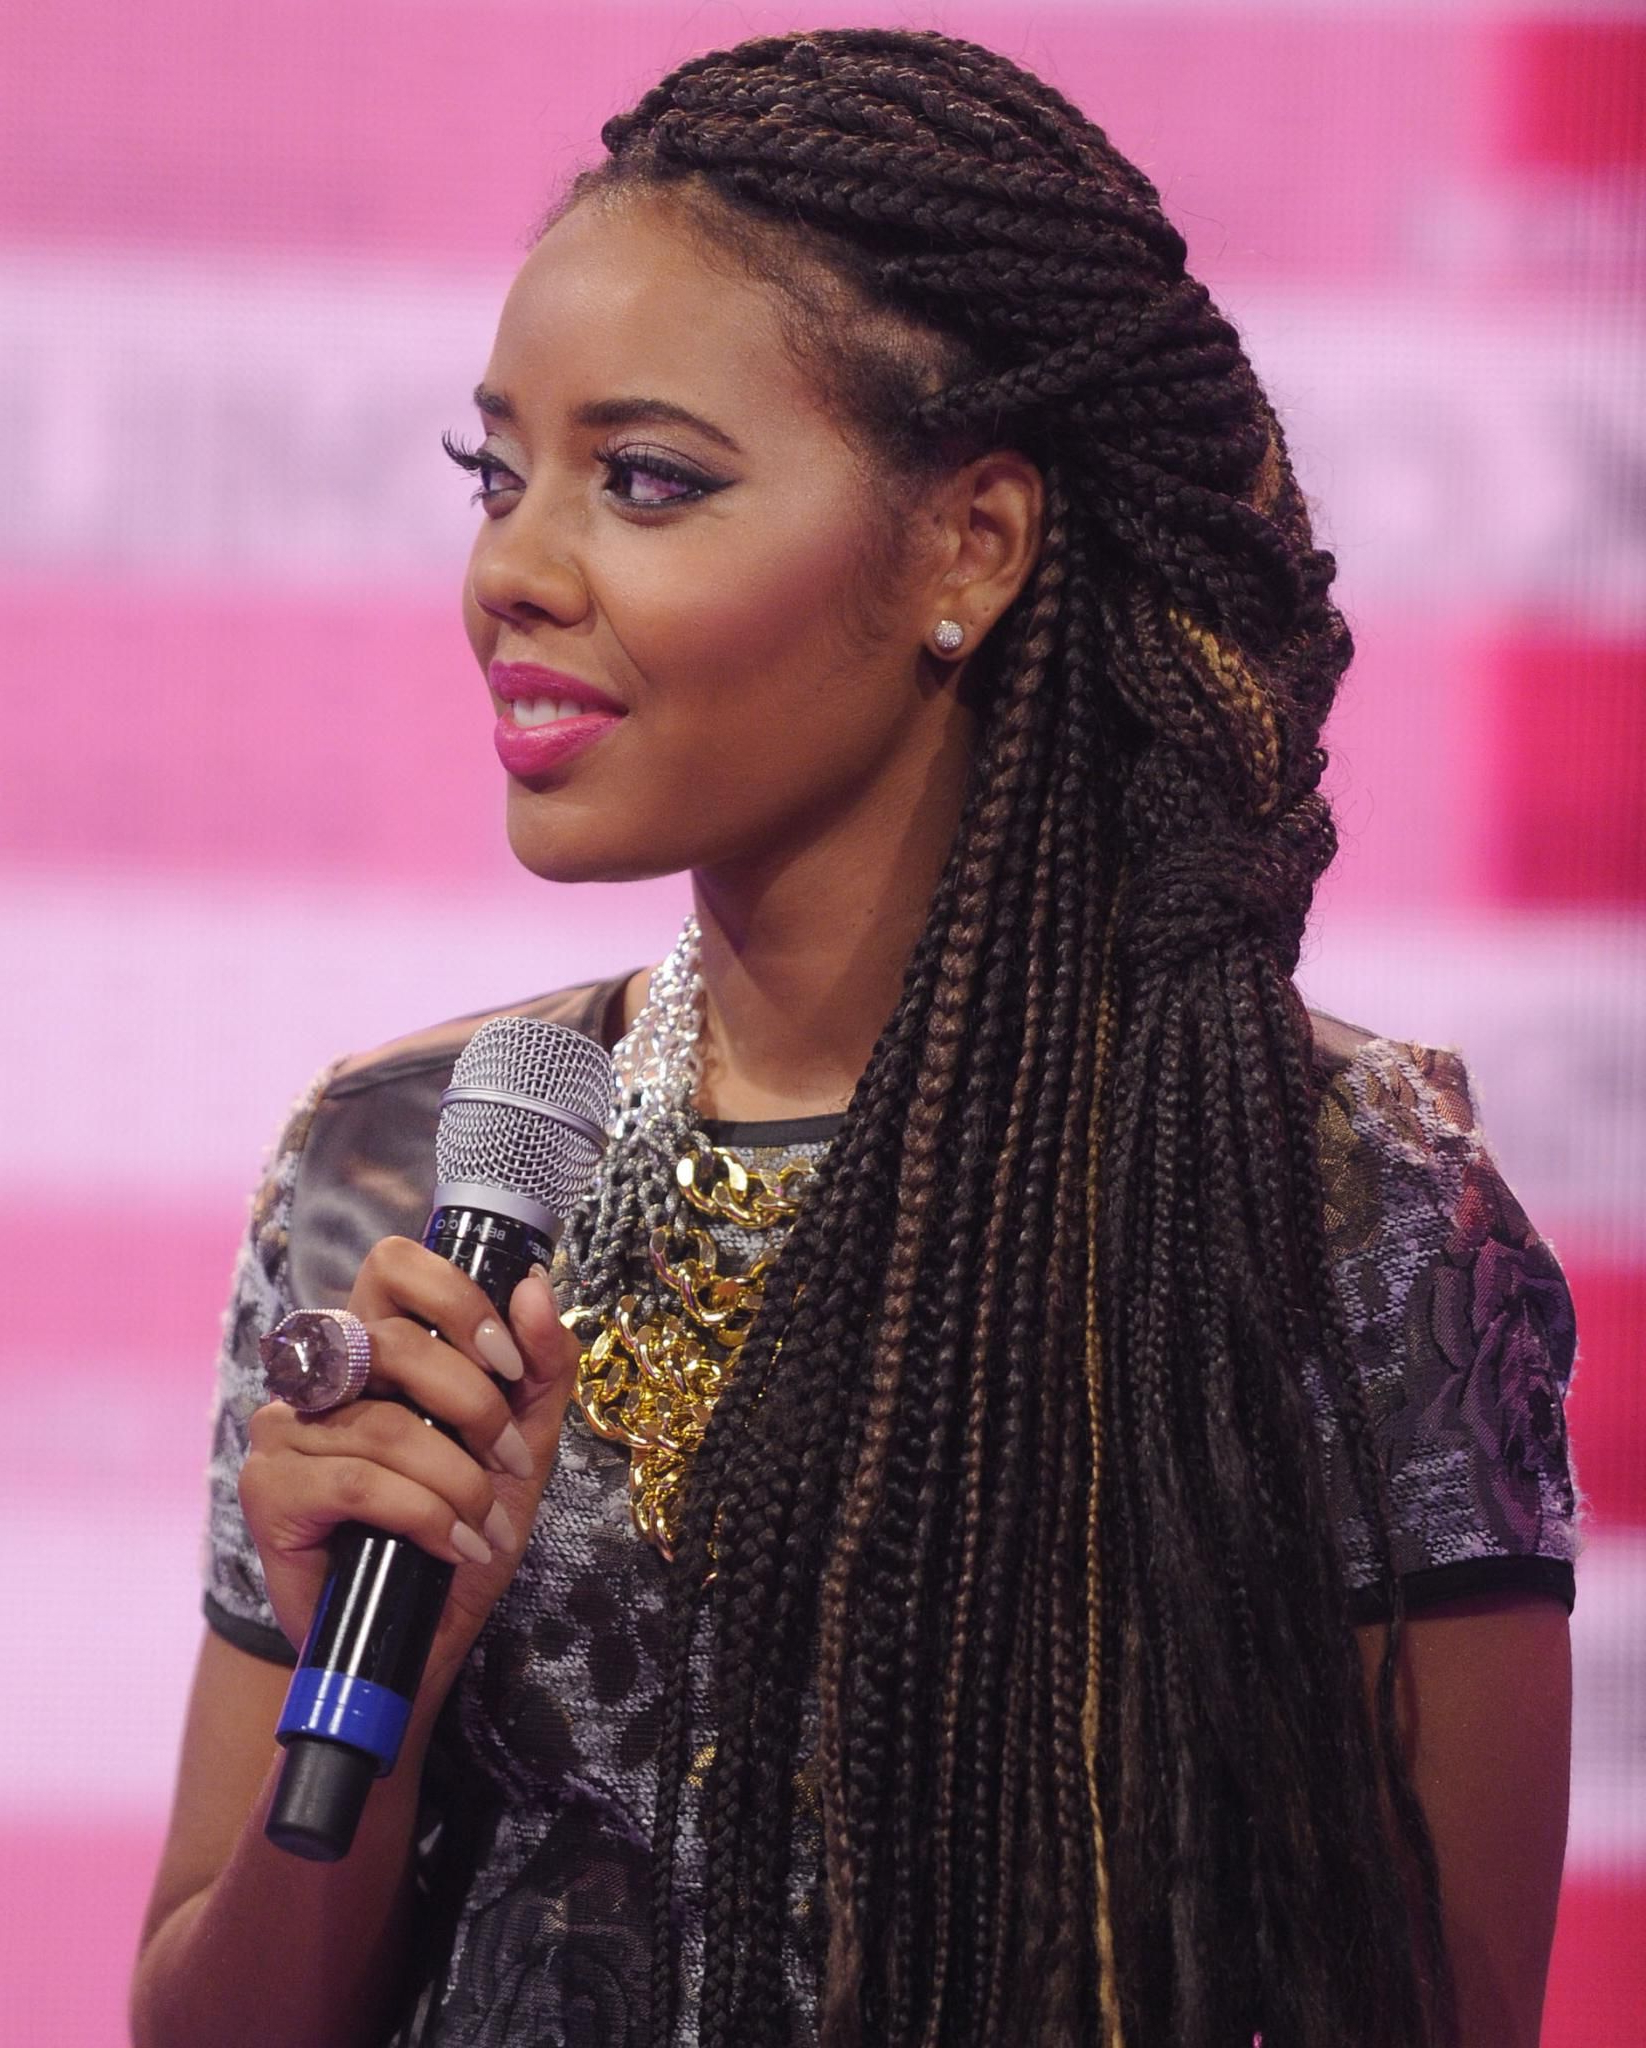 Trendy Dookie Braid Hairstyles With Blonde Highlights Inside Angela Simmons Rocks A Braided Style With Subtle Highlights (Gallery 9 of 20)